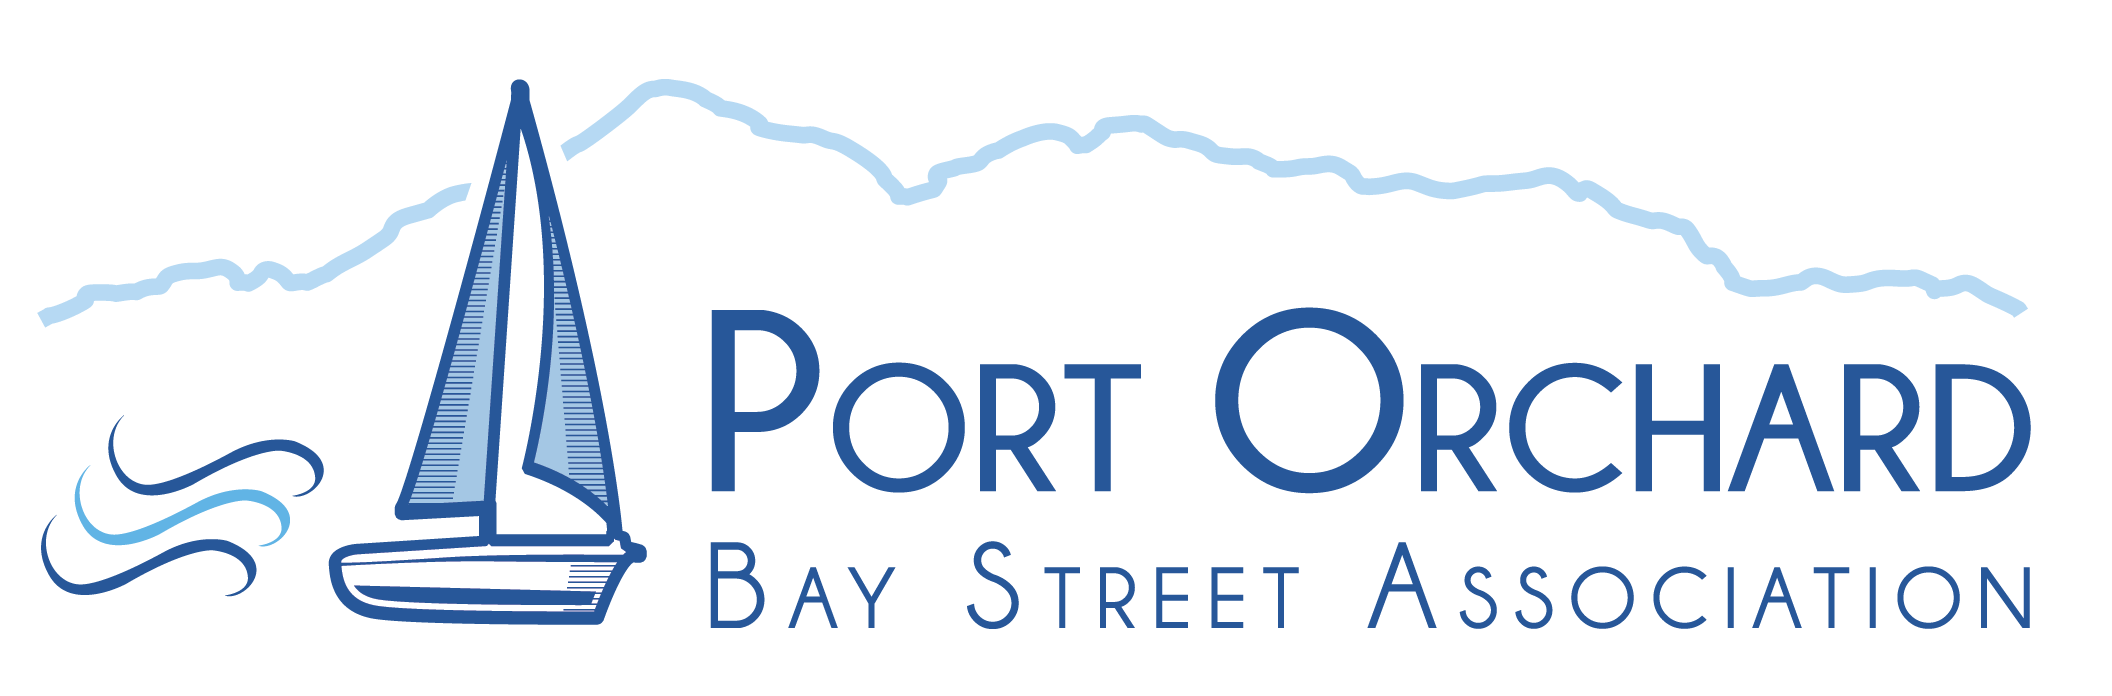 Port Orchard Bay Street Association Events